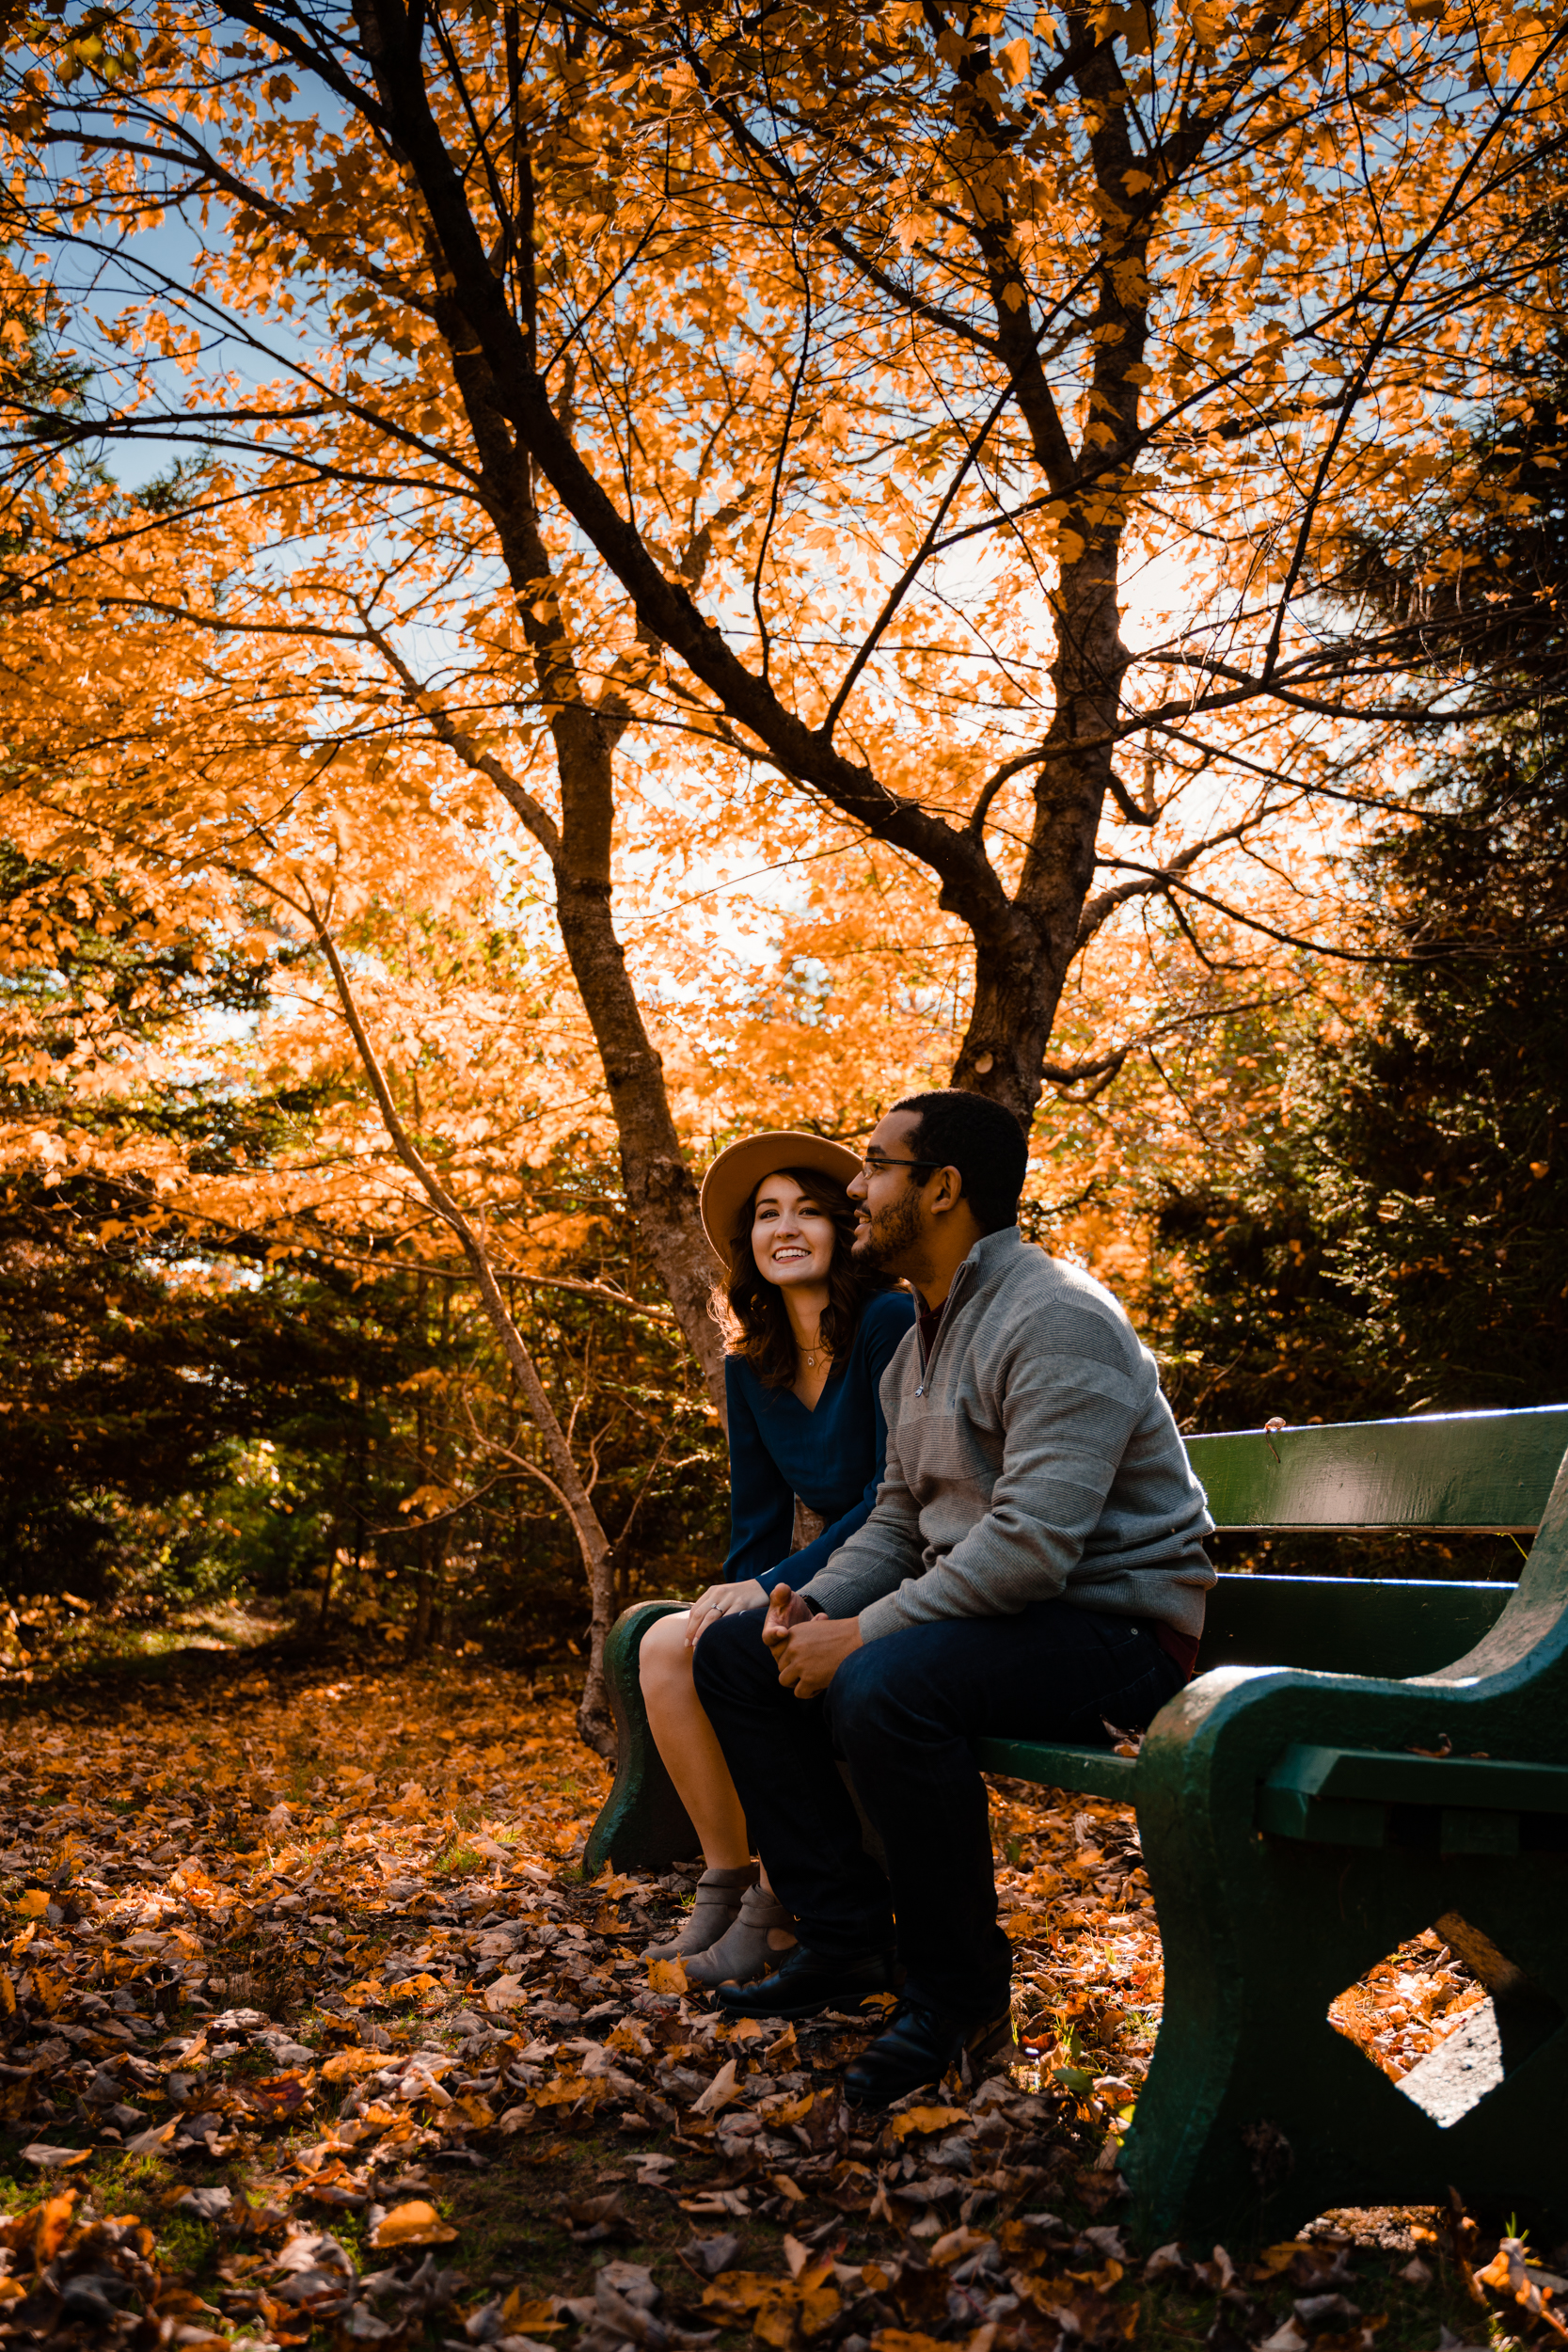 Wedding-halifax-engagement-nova-scotia-ottawa-ontario-pointpleasantpark-Fall-Autumn (25 of 53).jpg